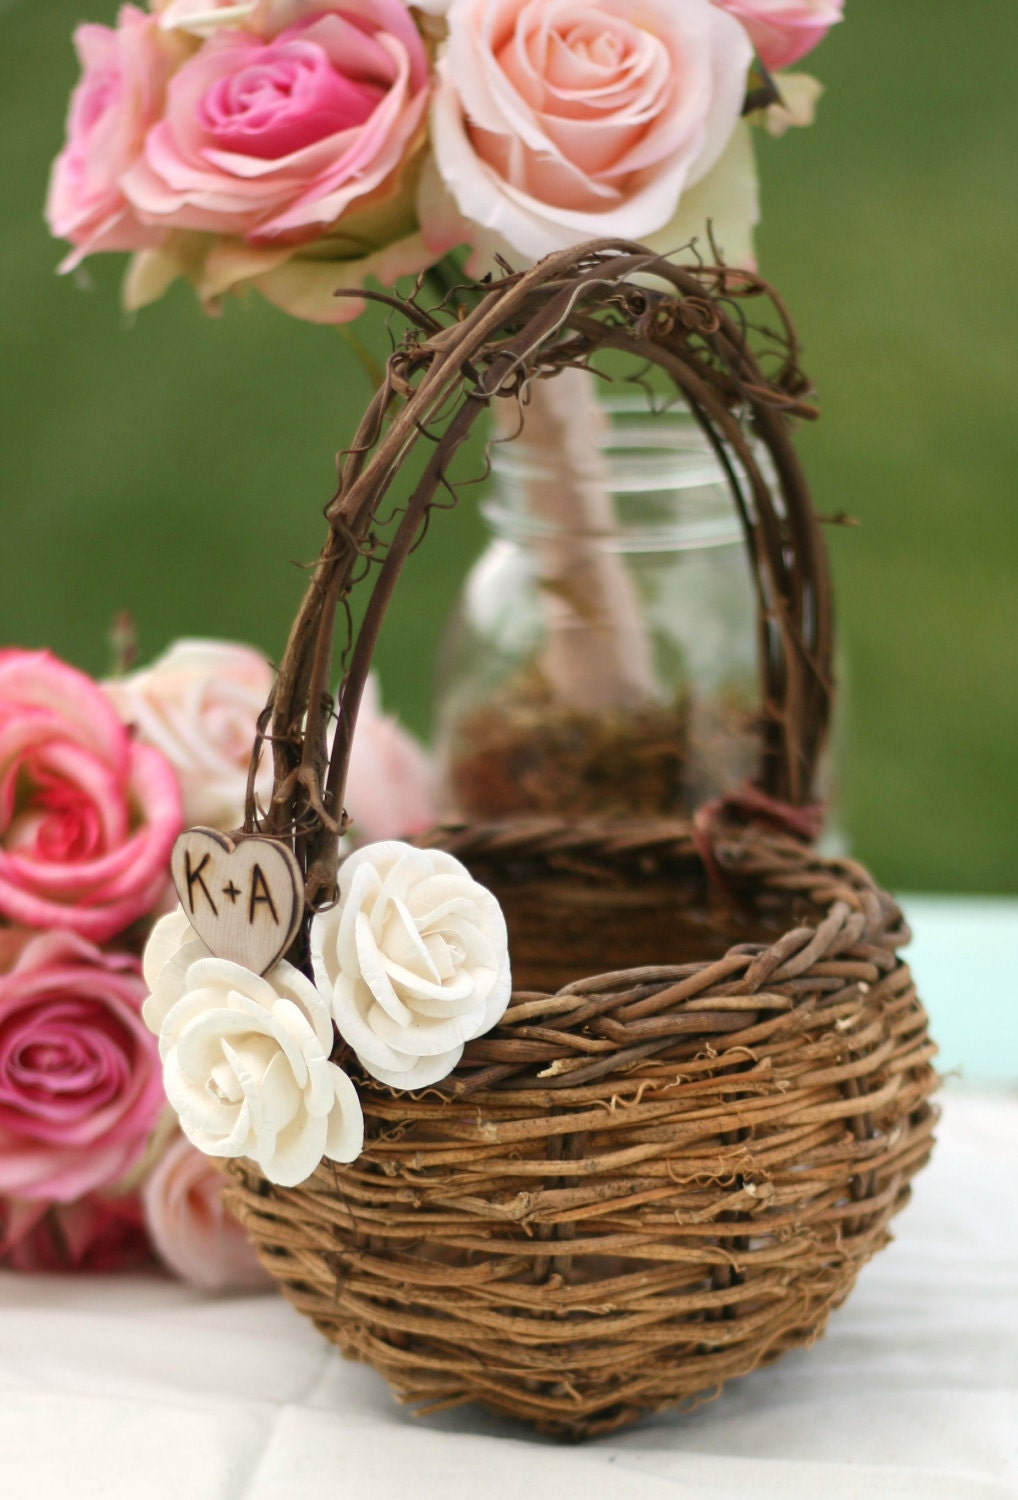 Flower Girl Baskets Diy Pinterest : Bird nest flower girl basket paper roses rustic by